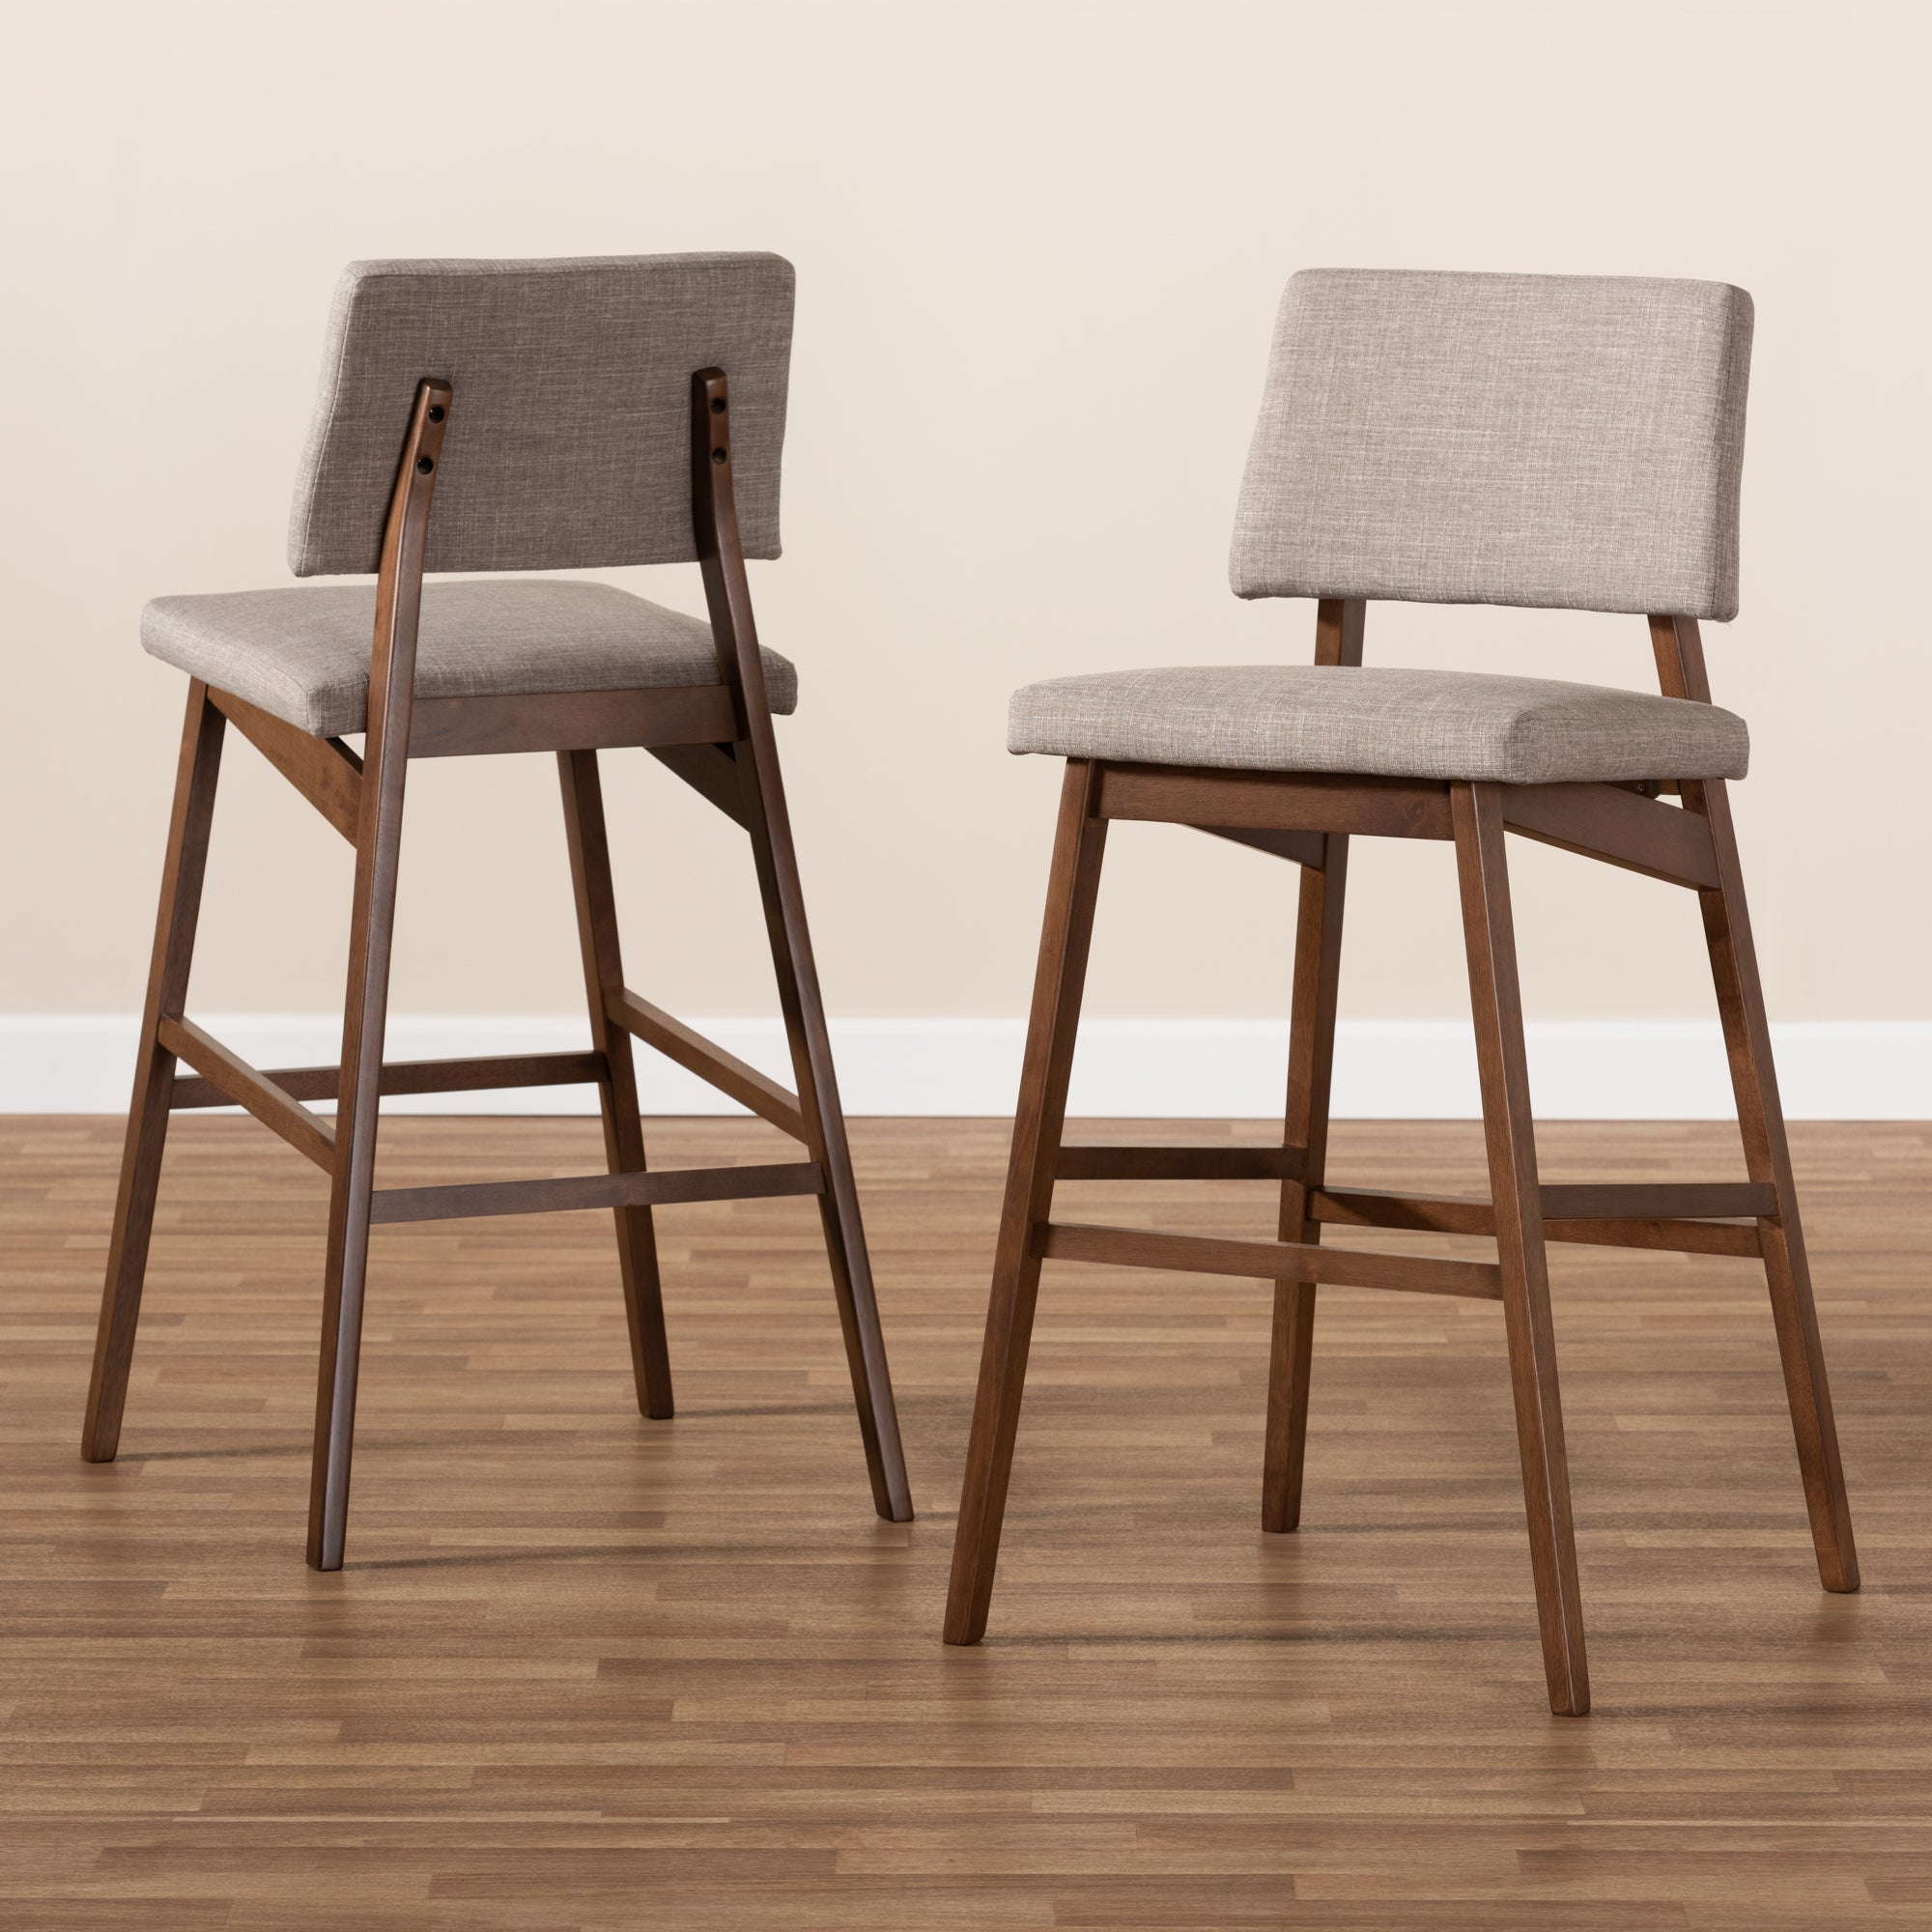 Colton Mid-Century Modern Light Gray Fabric Upholstered and Walnut-Finished Wood Bar Stool Set of 2